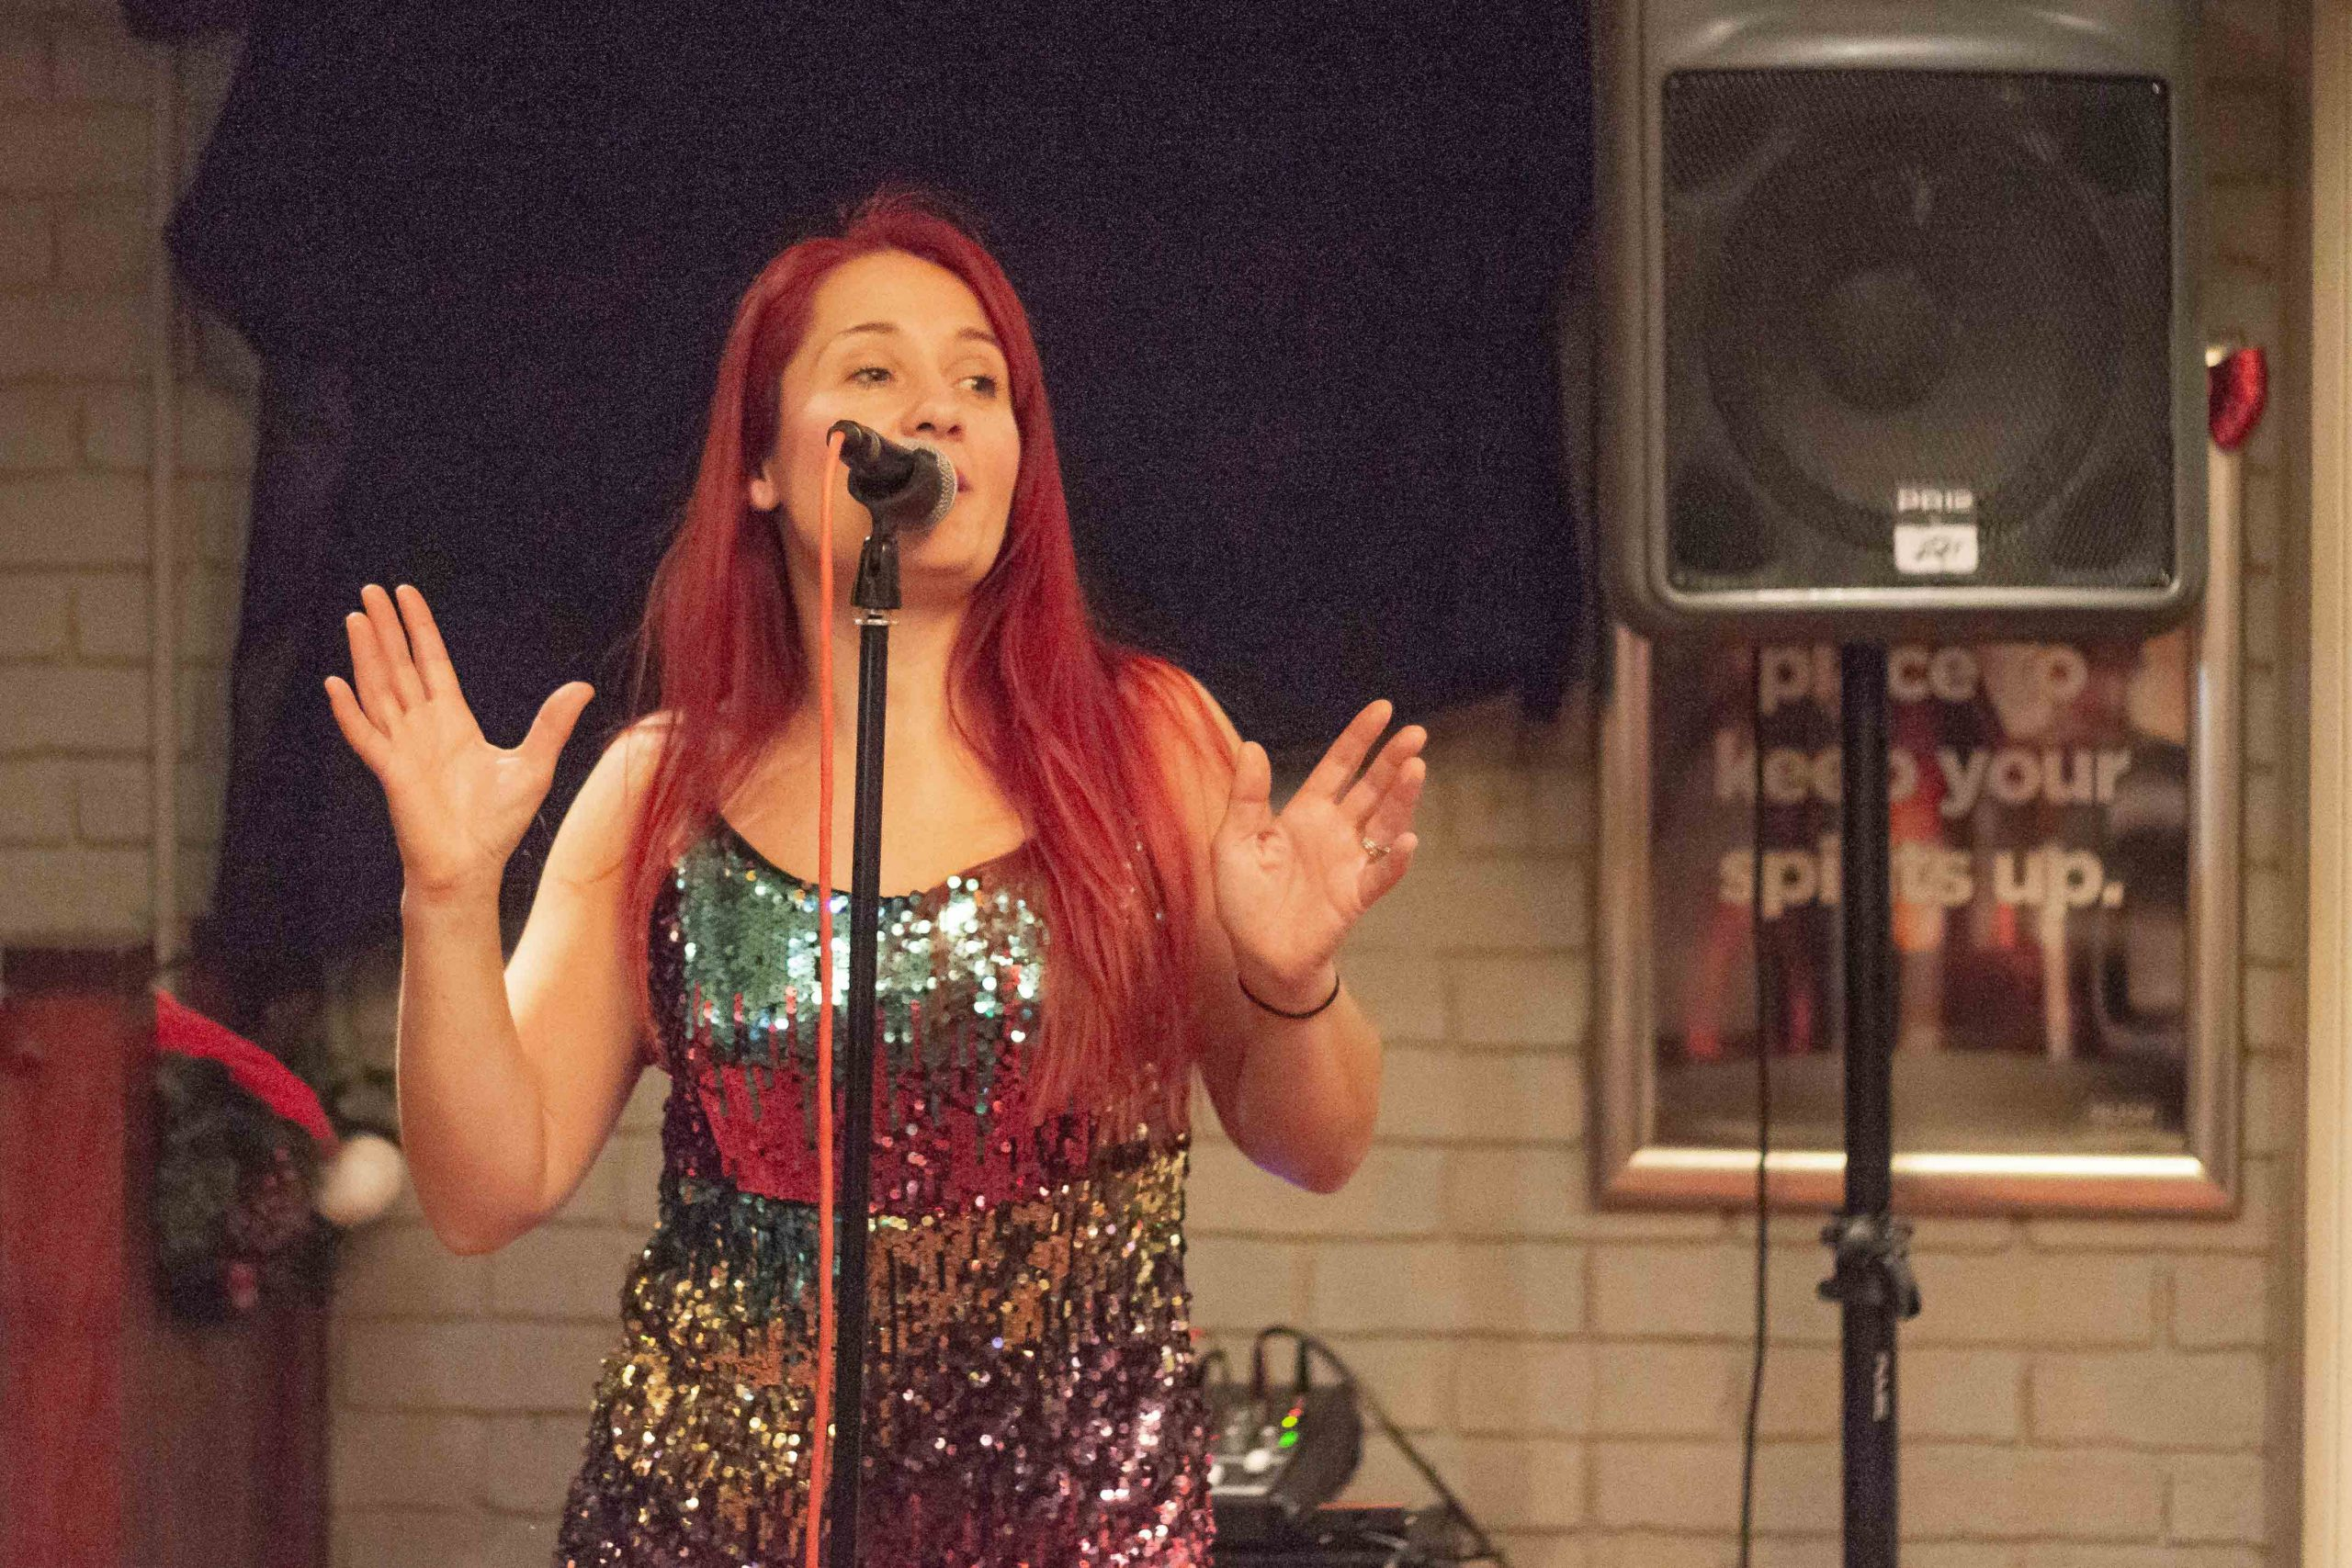 Female Vocalist With Deep Voice